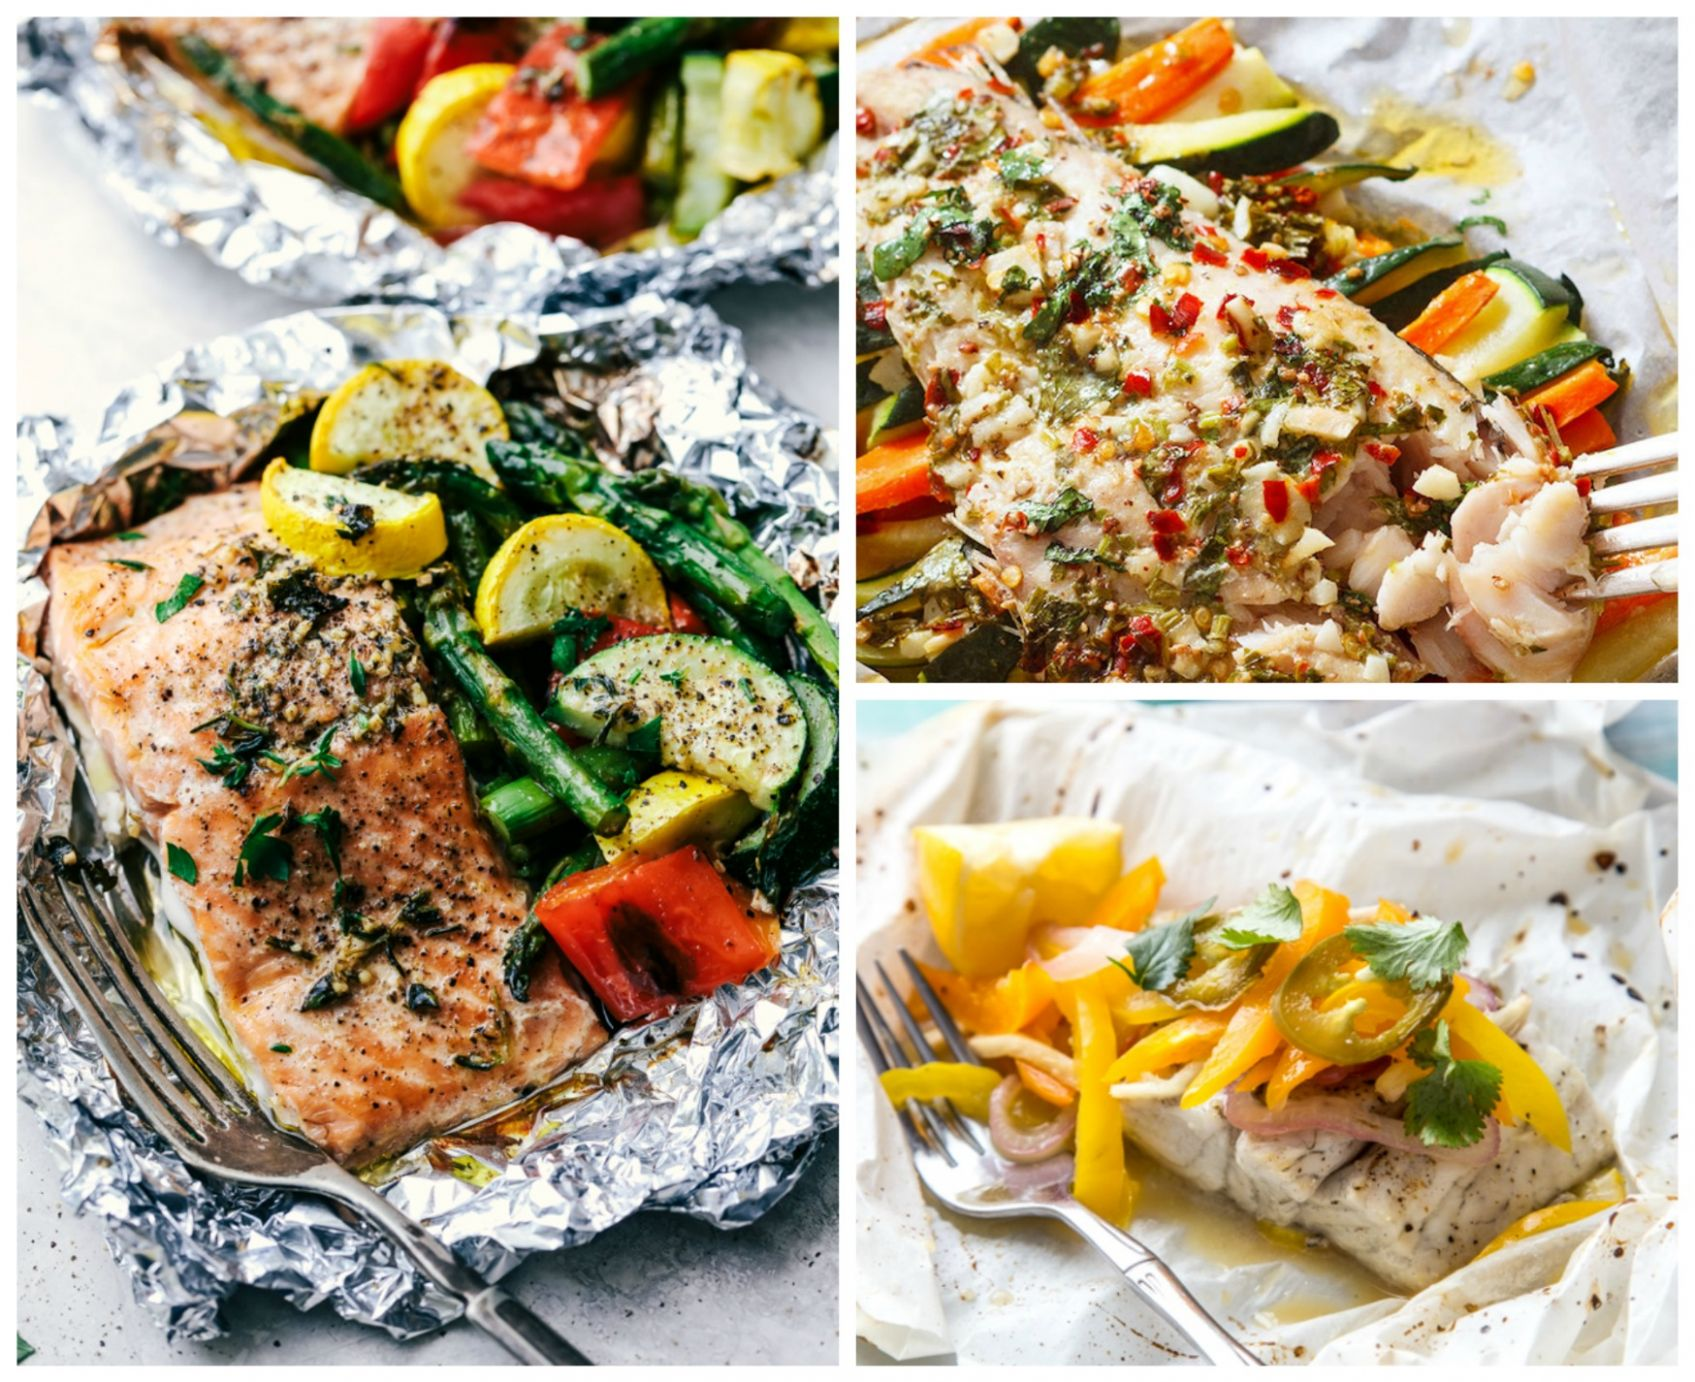 8 Easy Fish Foil Packet Dinners for Healthy Weight Loss - Recipes Fish In Foil Packets